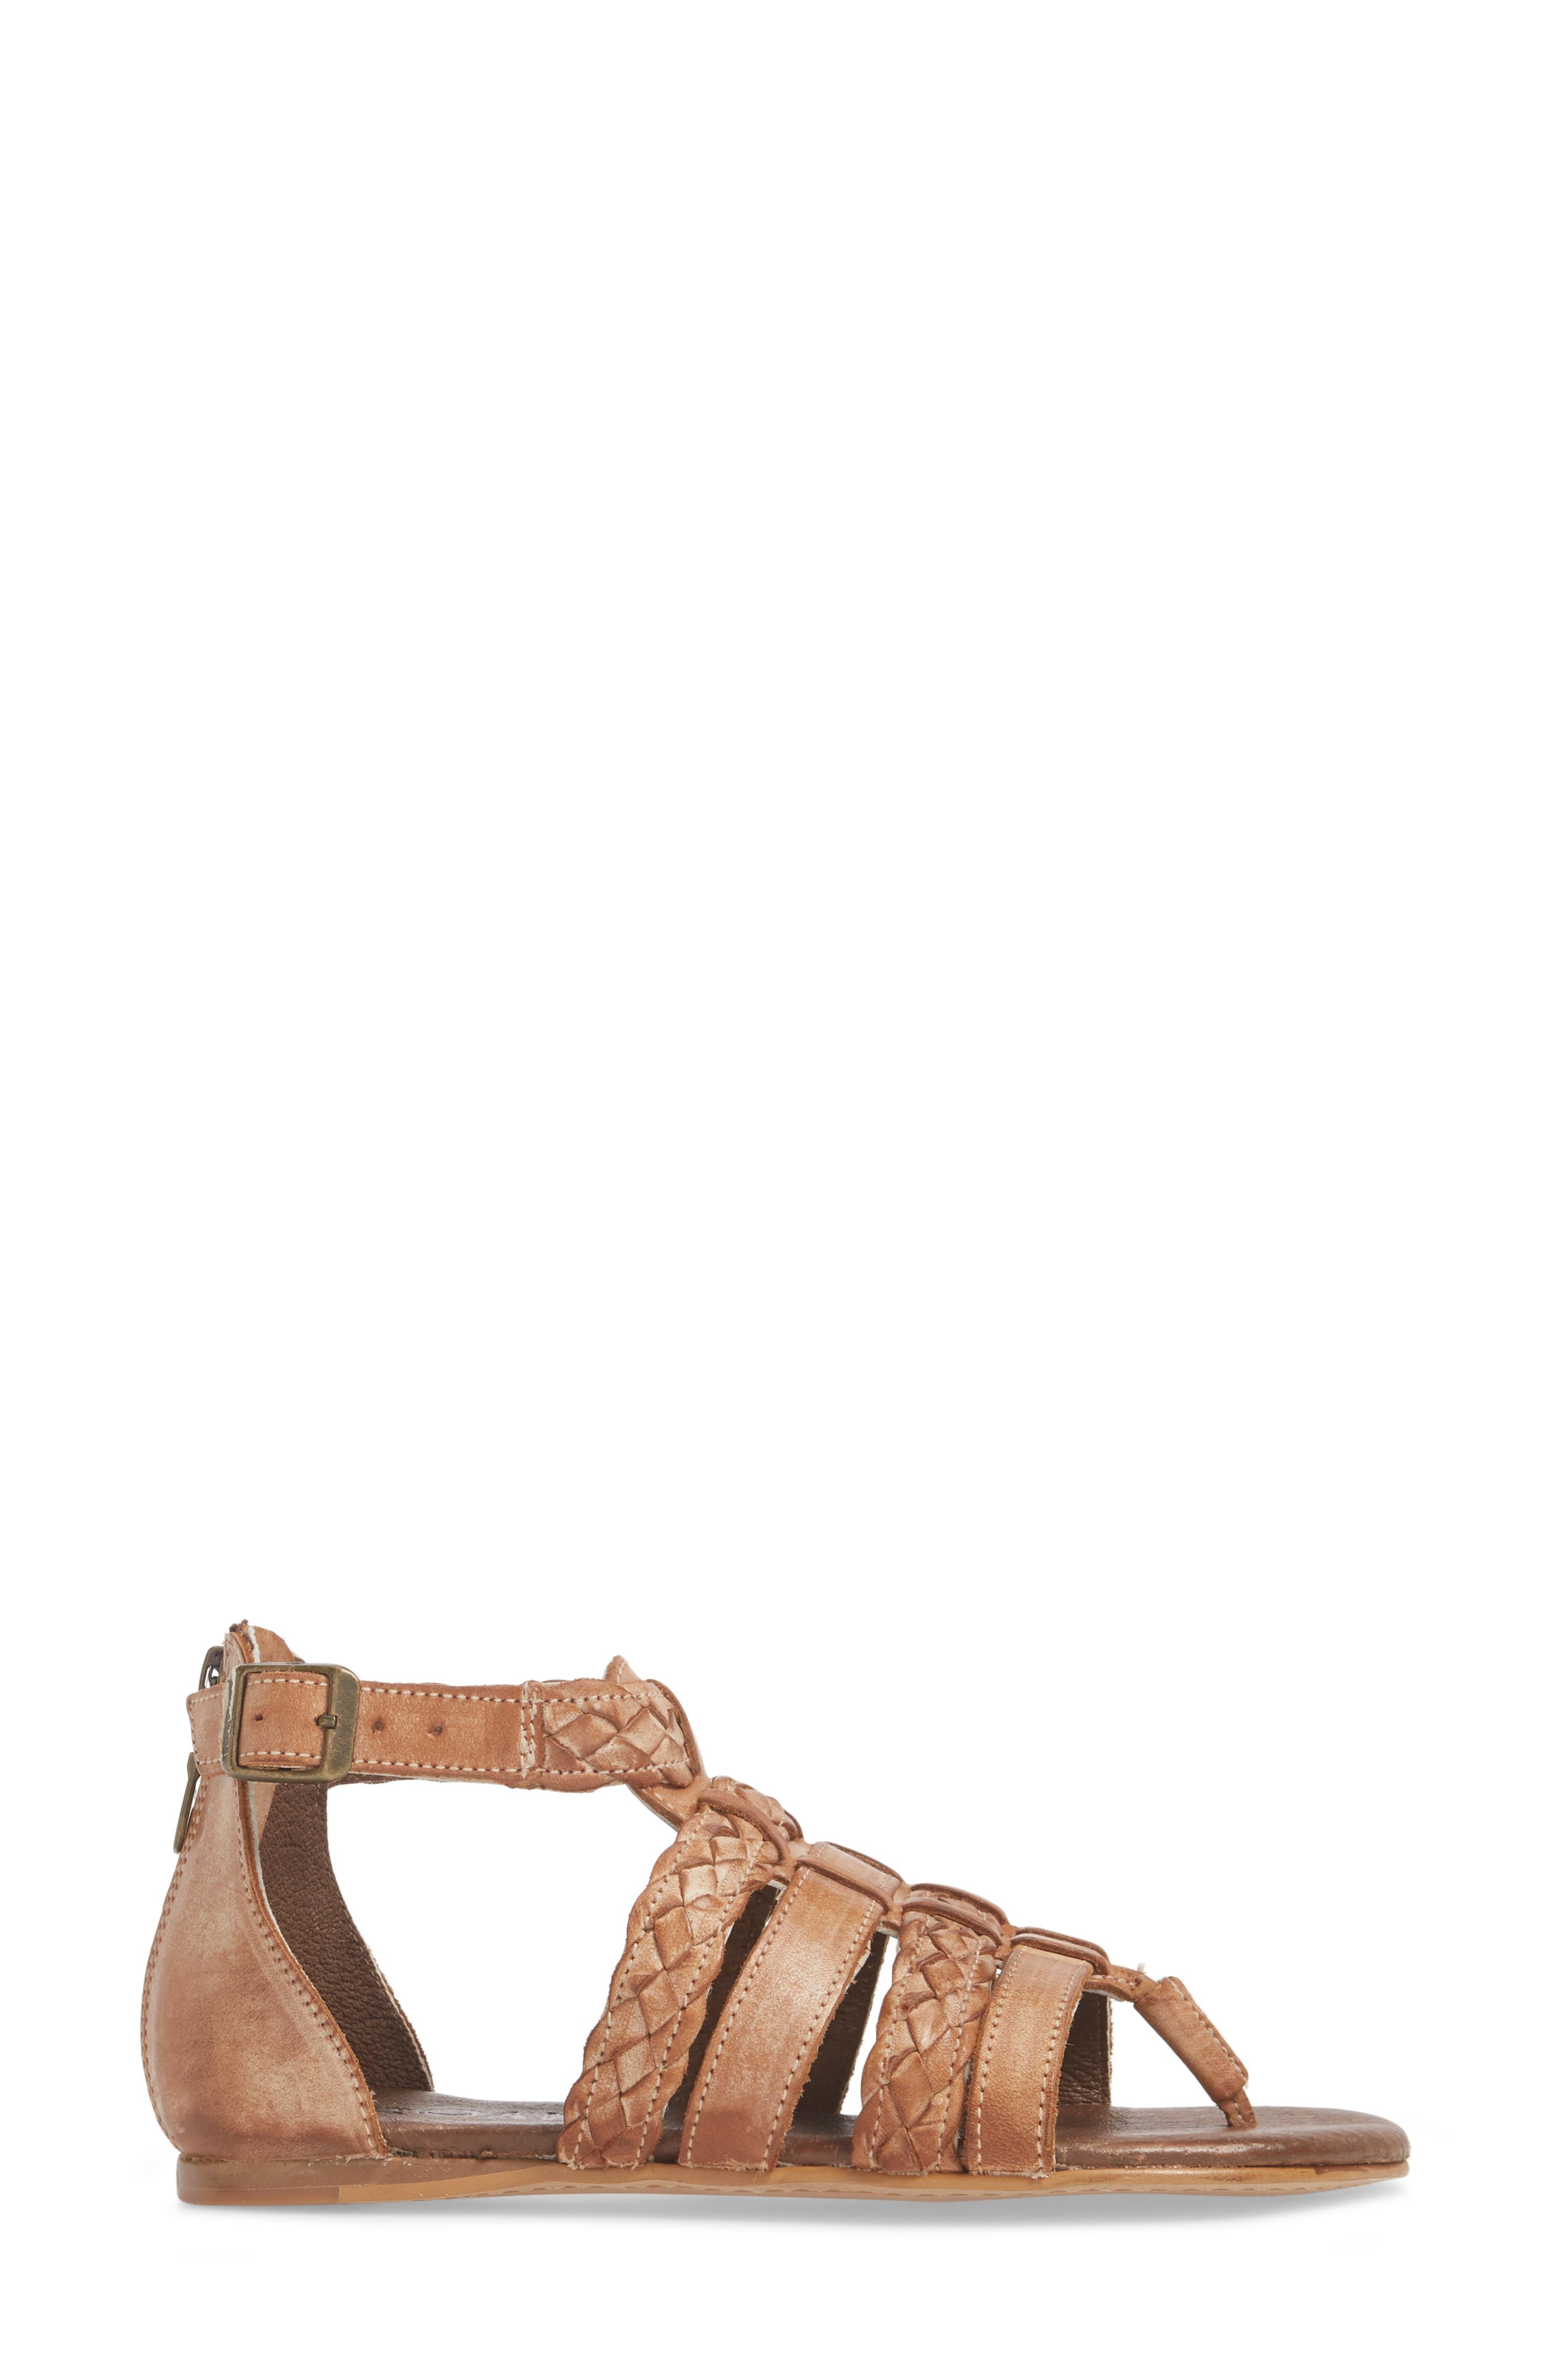 Kaliope Sandal,                             Alternate thumbnail 3, color,                             VICTORIA COGNAC/ WHITE